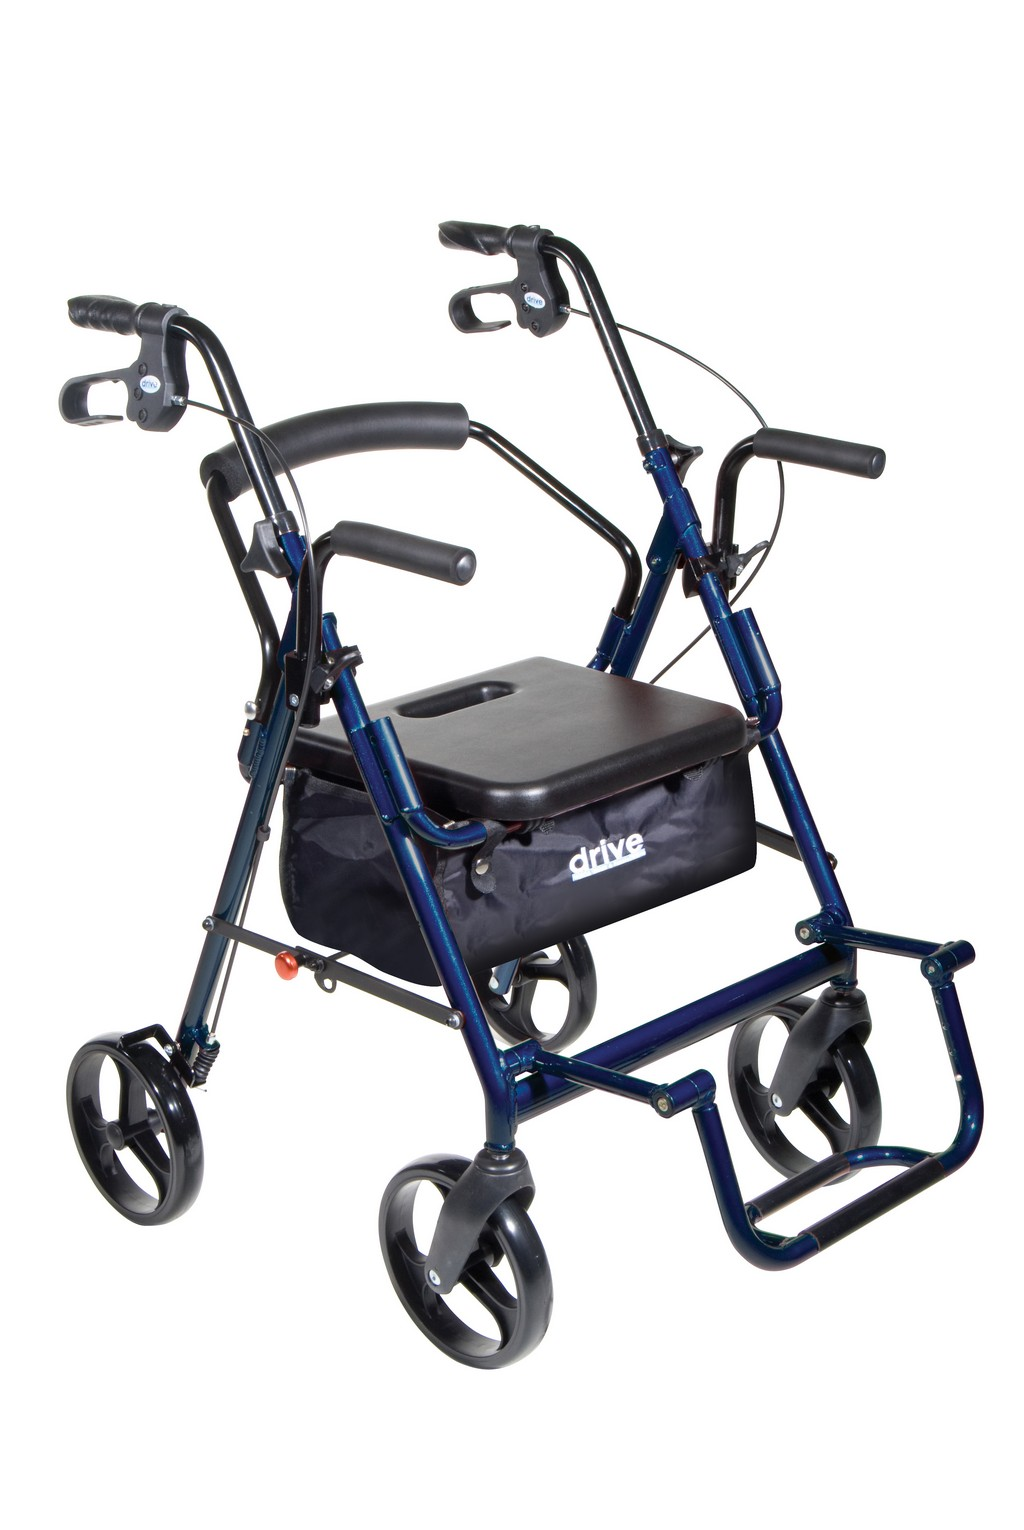 eagle health ha-4 adjustable rollators, duro-med light weight rollator, rollator trays mugholders, medline freedom rollator